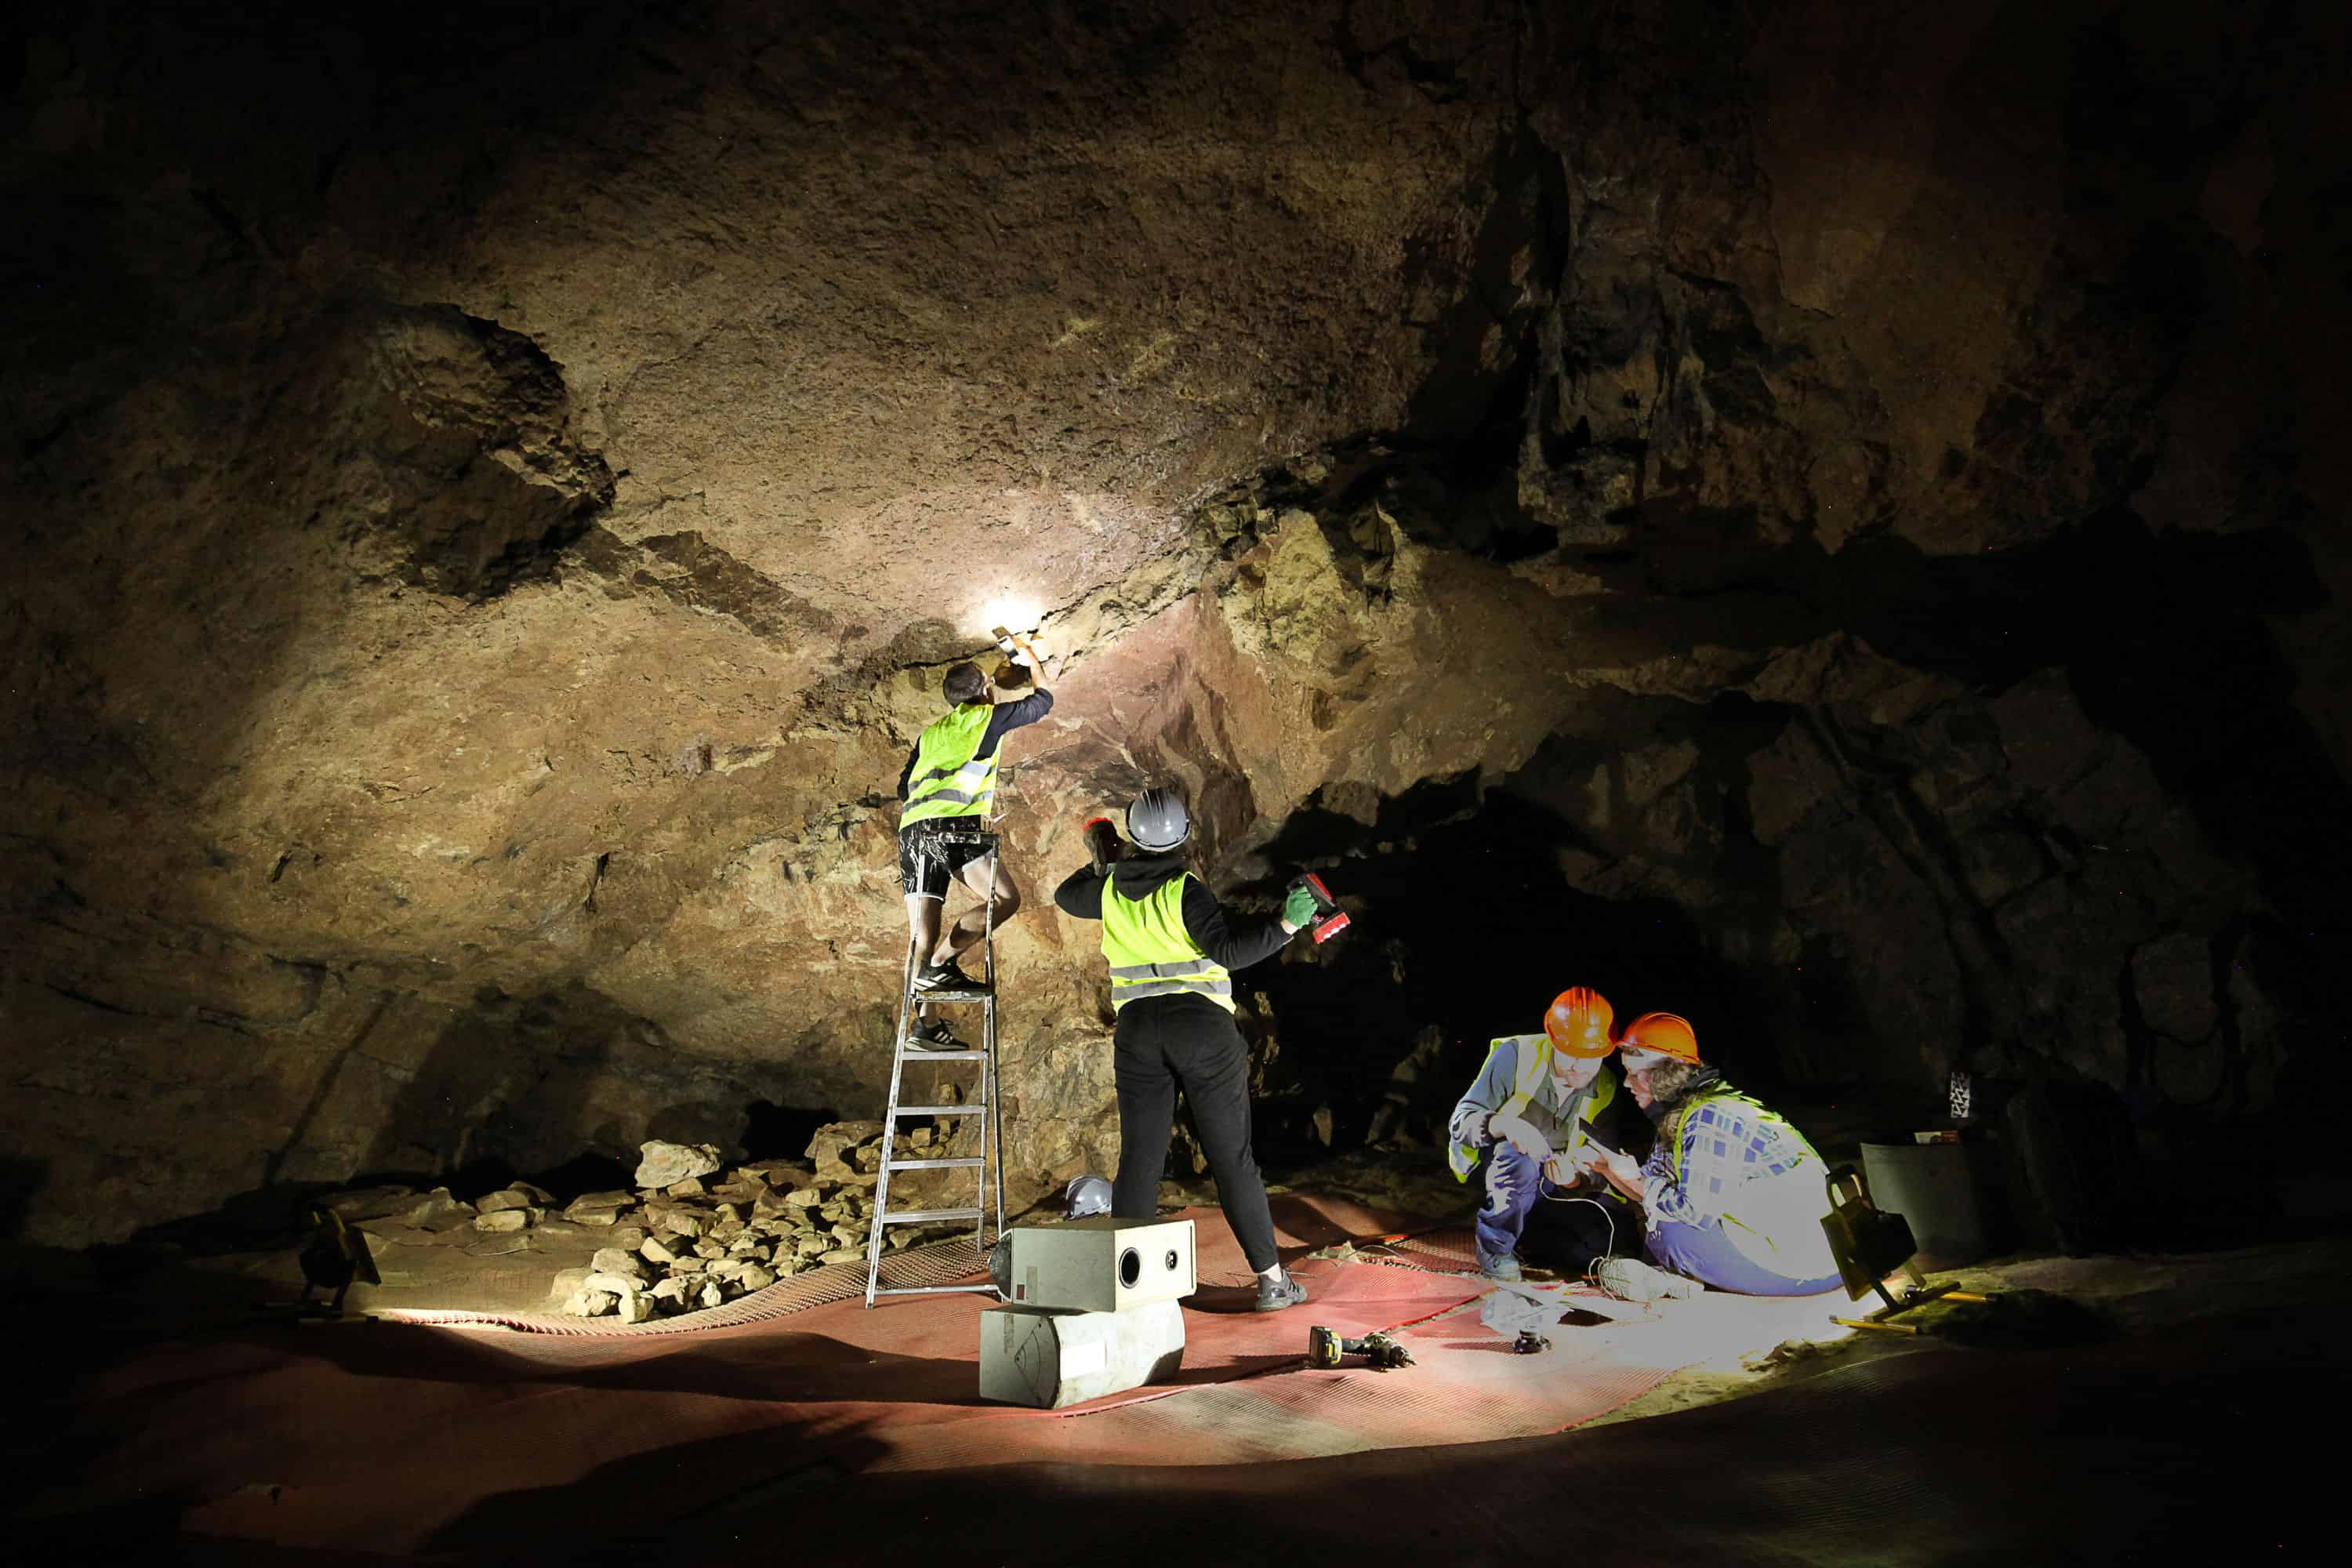 AlanJames Burns and his team installing Entirely hollow aside from the dark inside Creswell Crags Caves, September 2019, Photo Marek Wolynski